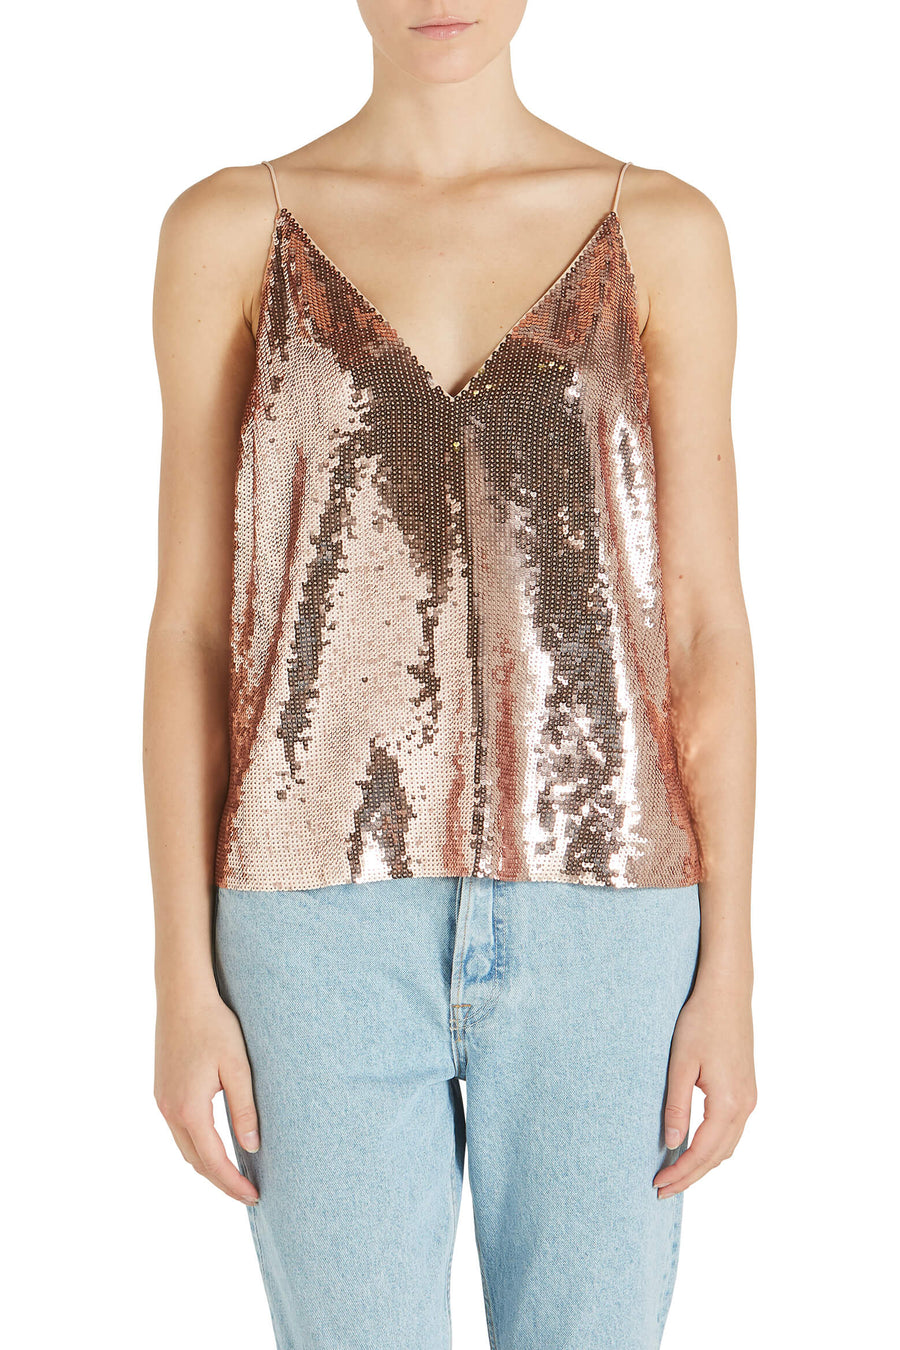 Veronica Beard Coda Cami from The New Trend